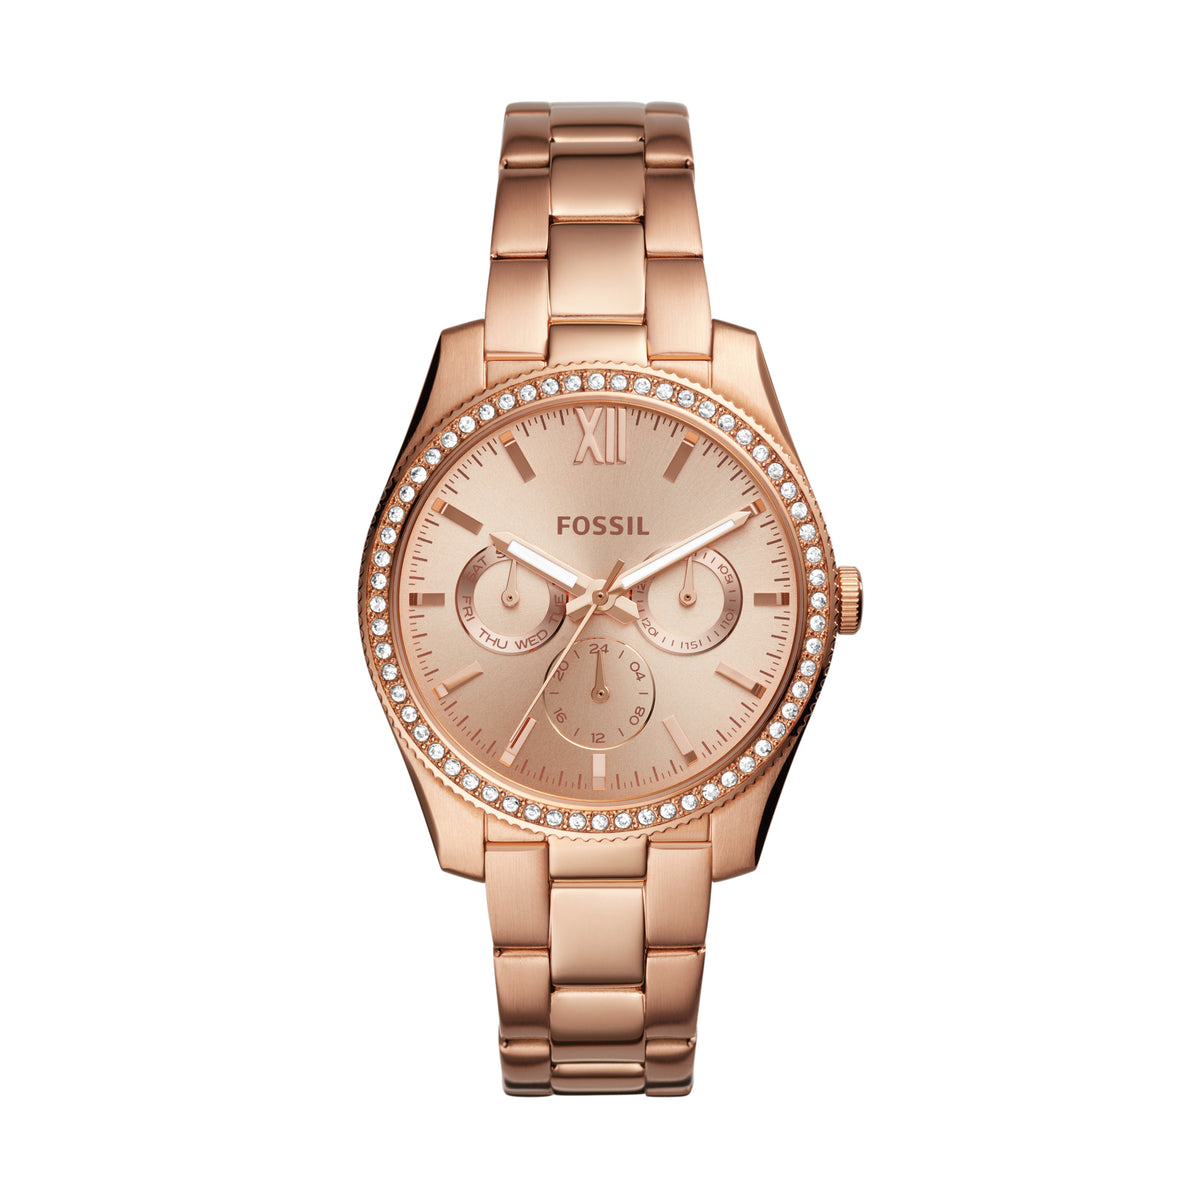 Fossil Watch - Scarlette multifunction Rose-Gold stainless steel watch